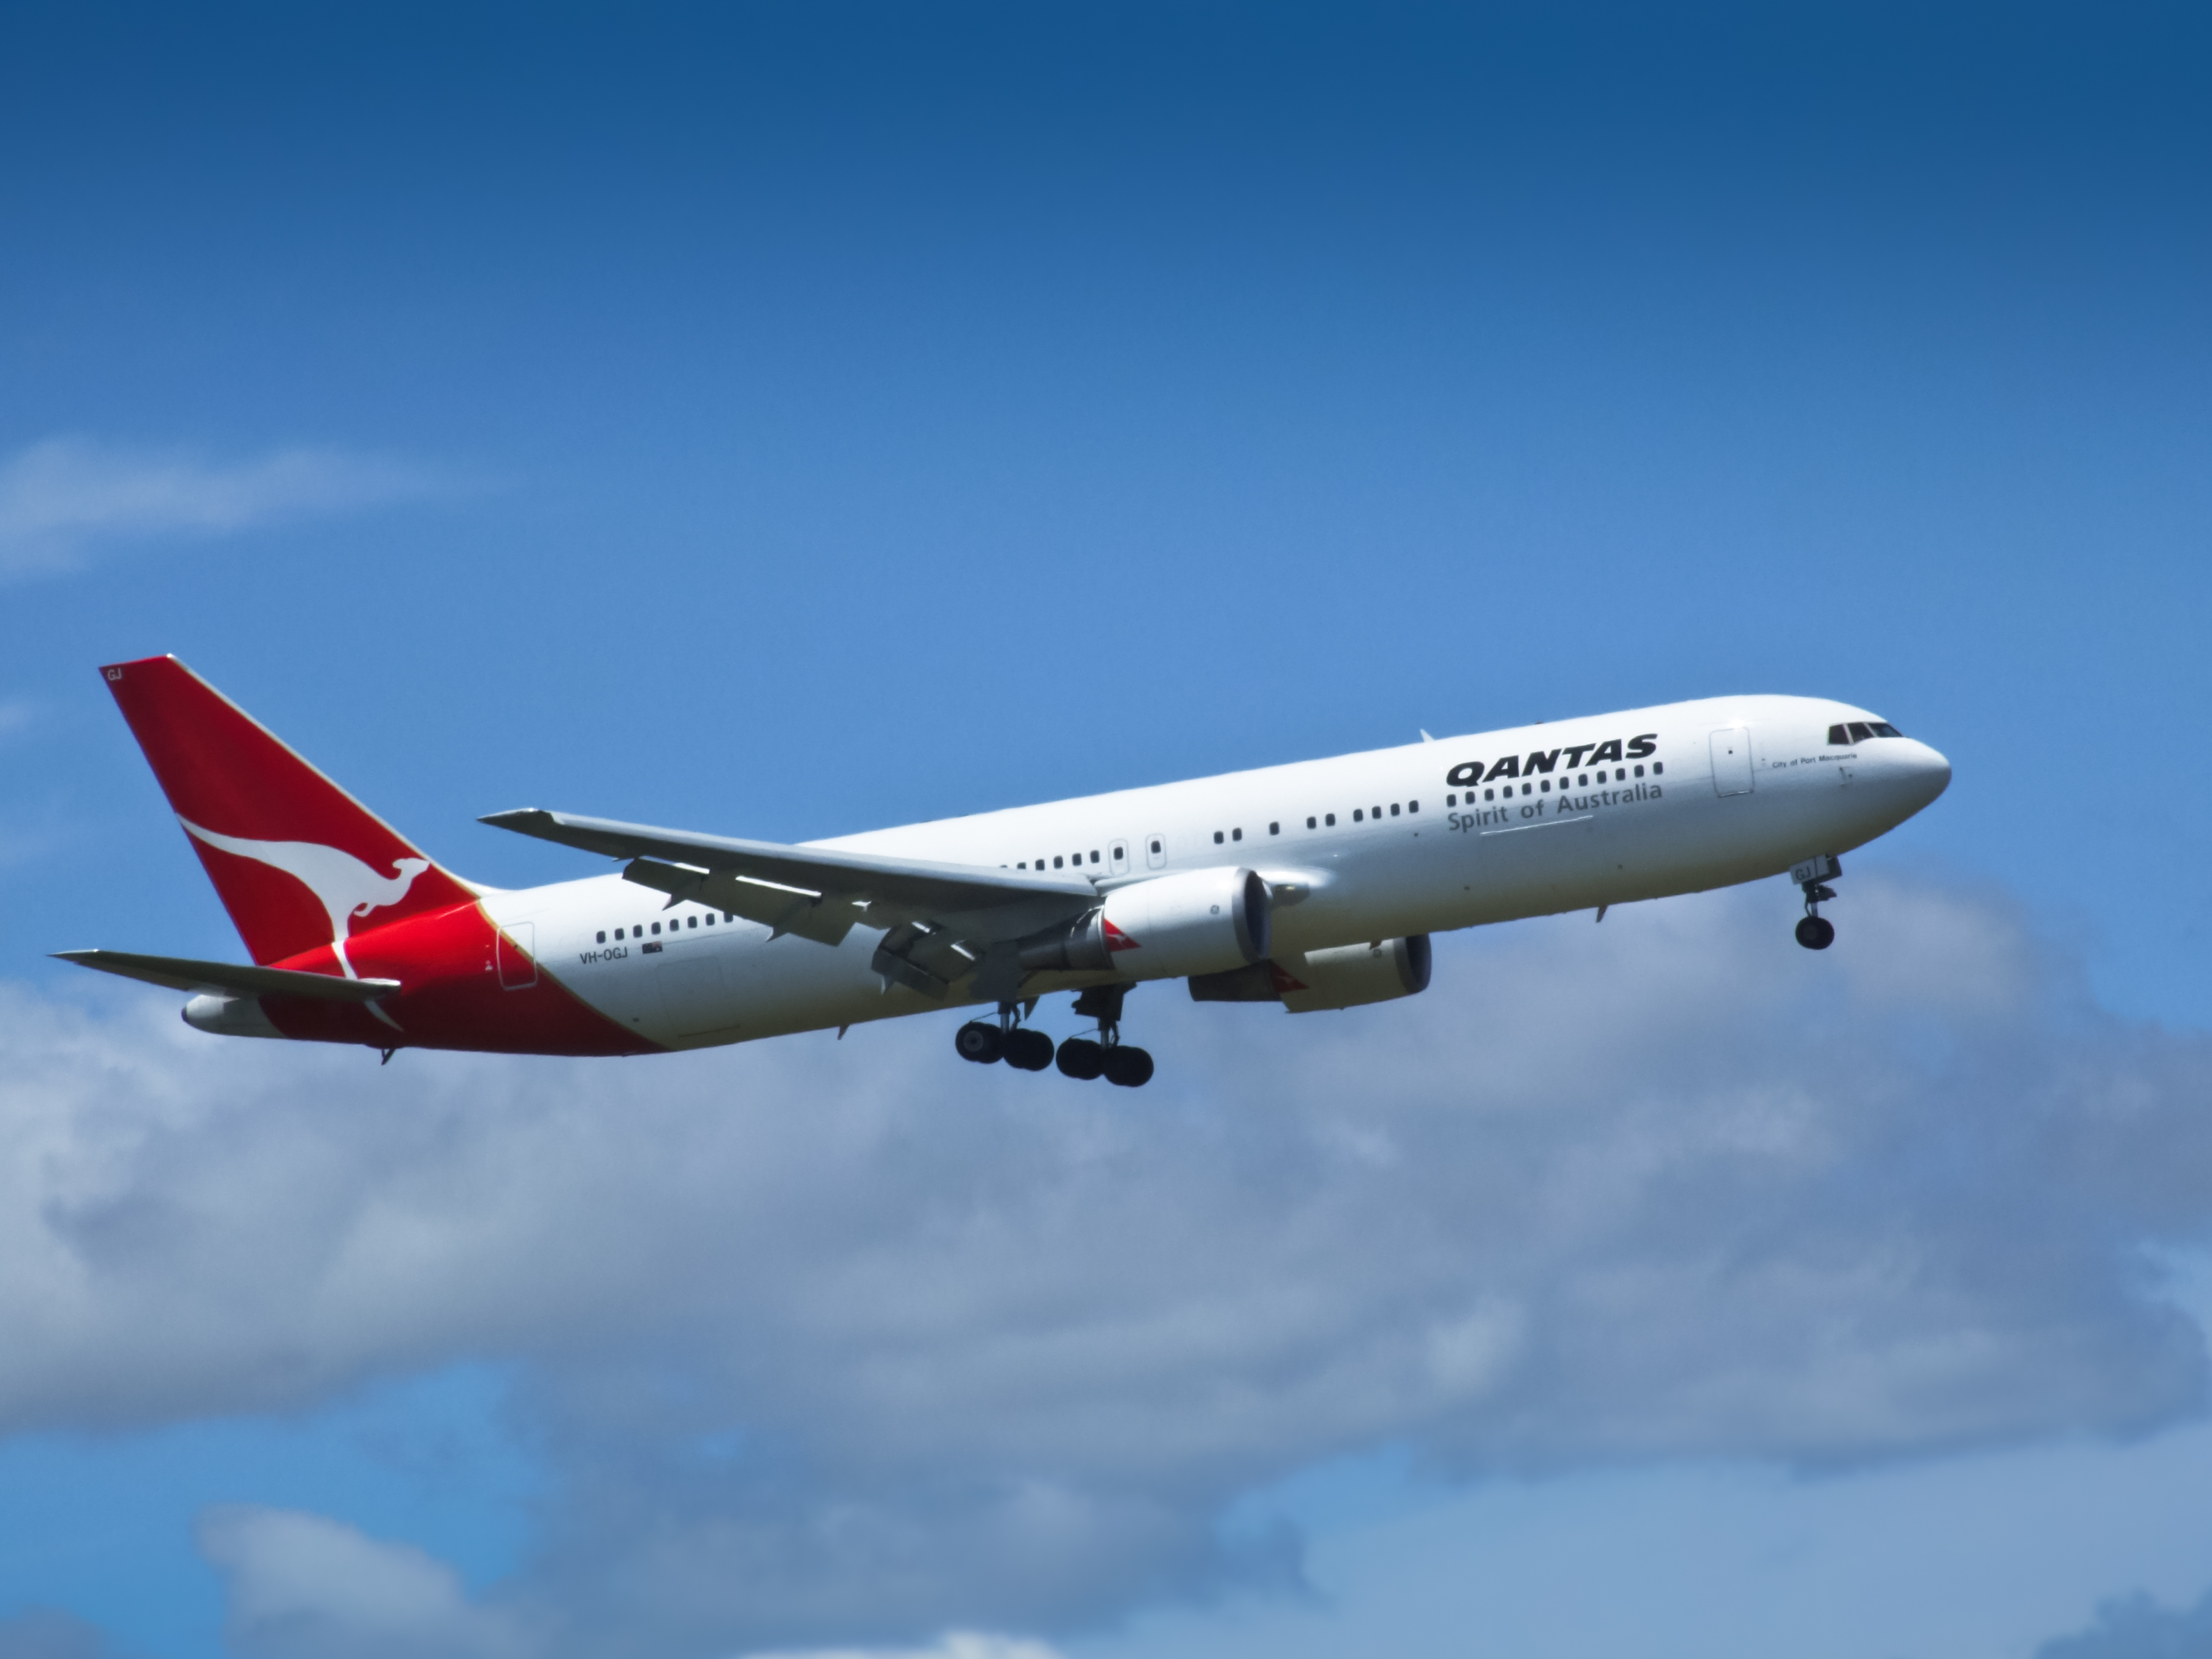 Best Wallpapers Hd 1366x768 File 01 Qantas Vh Ogj Boeing 767 Jpg Wikimedia Commons